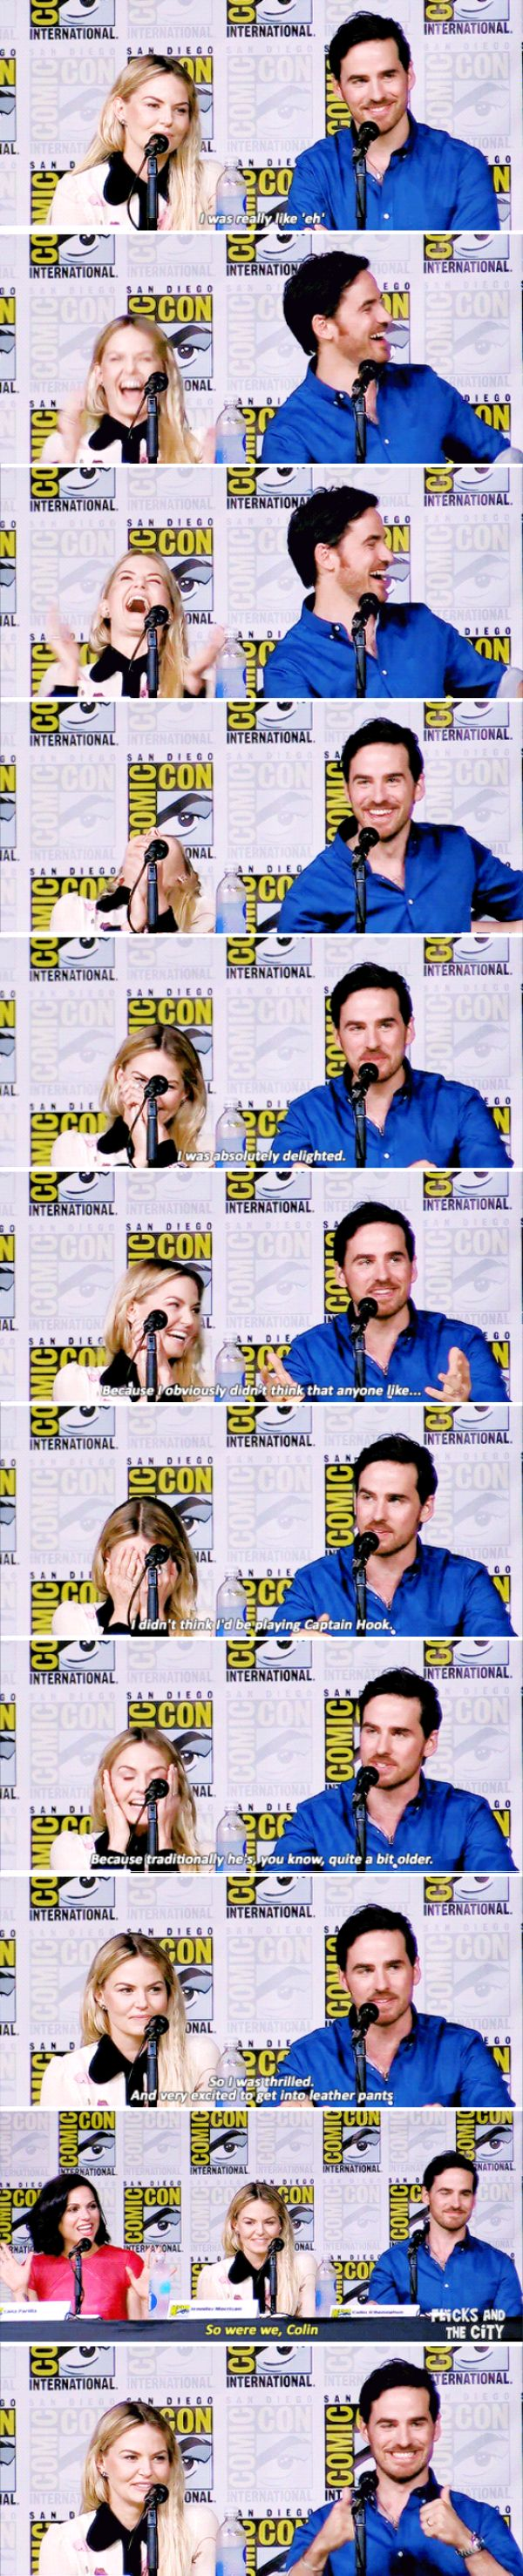 Colin O'Donoghue, Jennifer Morrisona and Lana Parilla at San Diego Comic Con 2016 - 23 July 2016 <<< Jennifer and Lana's reactions are GOLDEN!